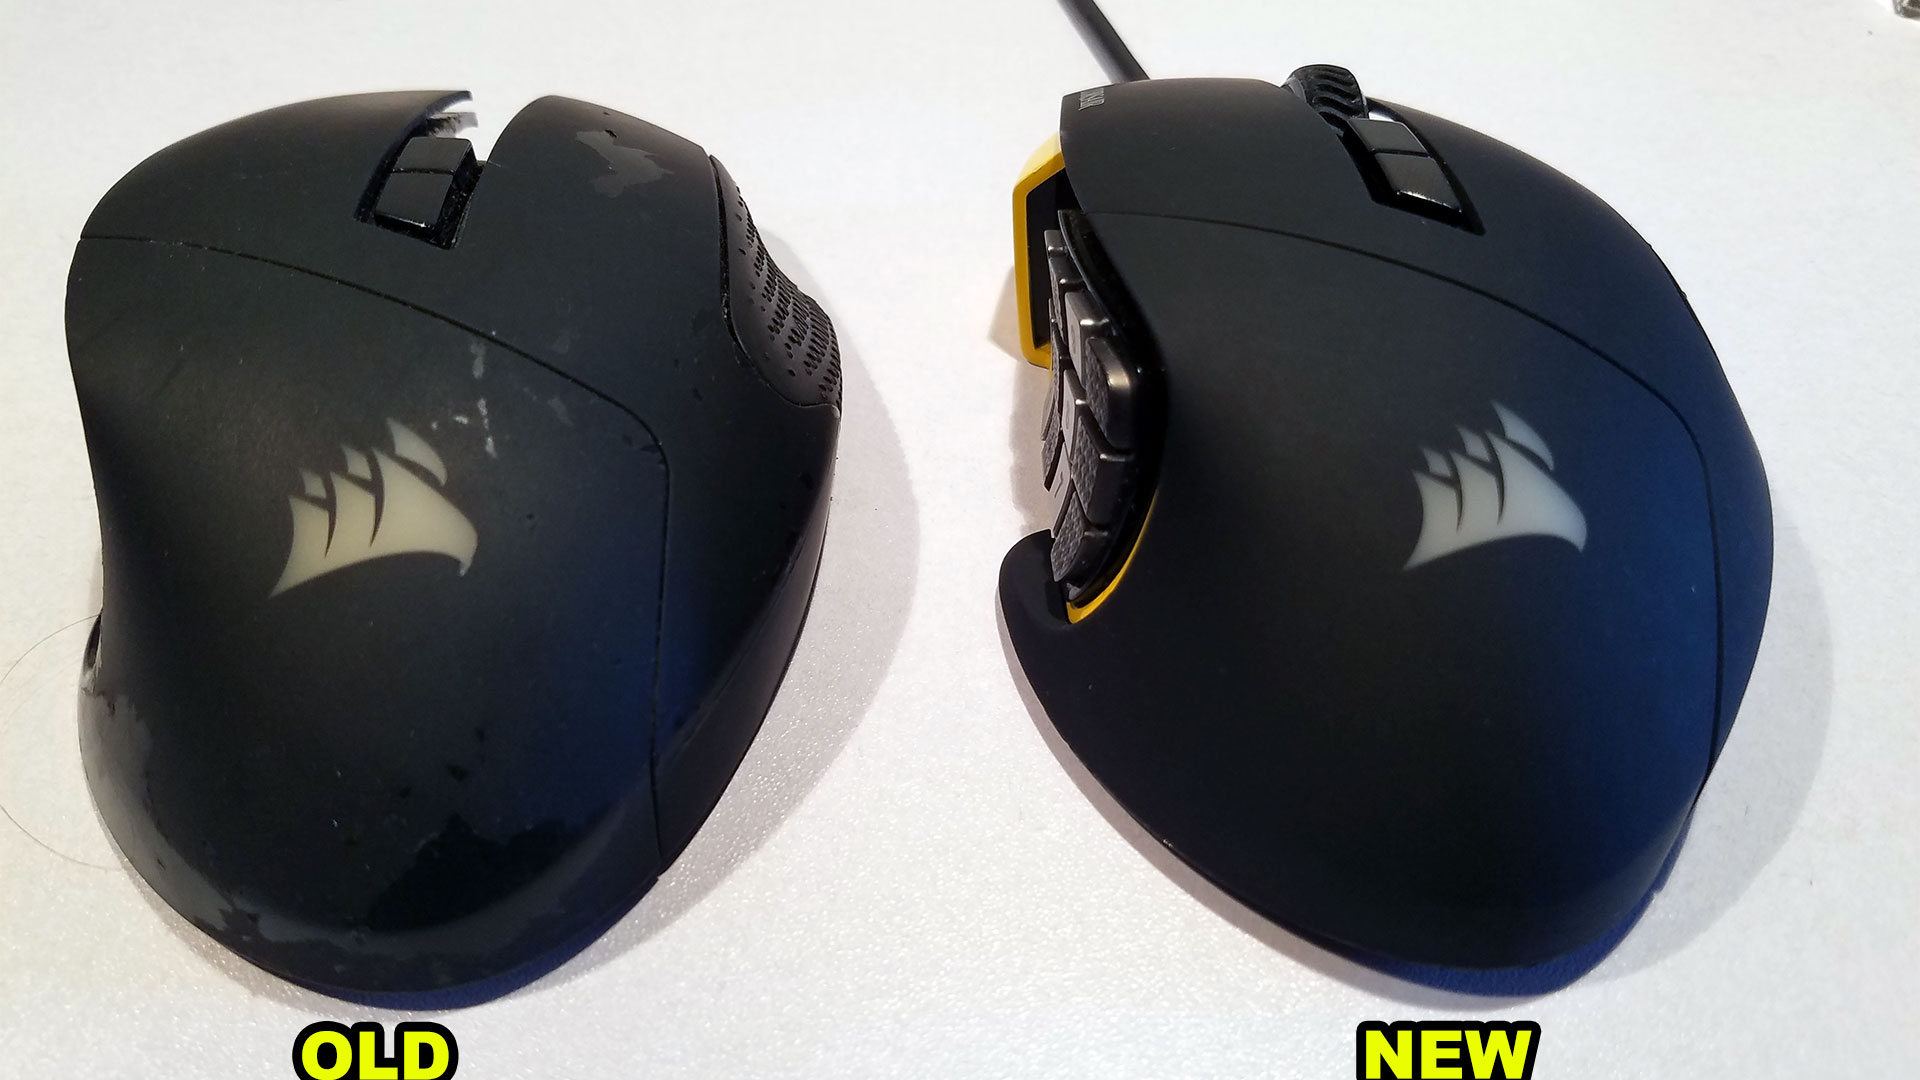 Corsair Scimitar - Old shell vs. New chinese shell comparison.